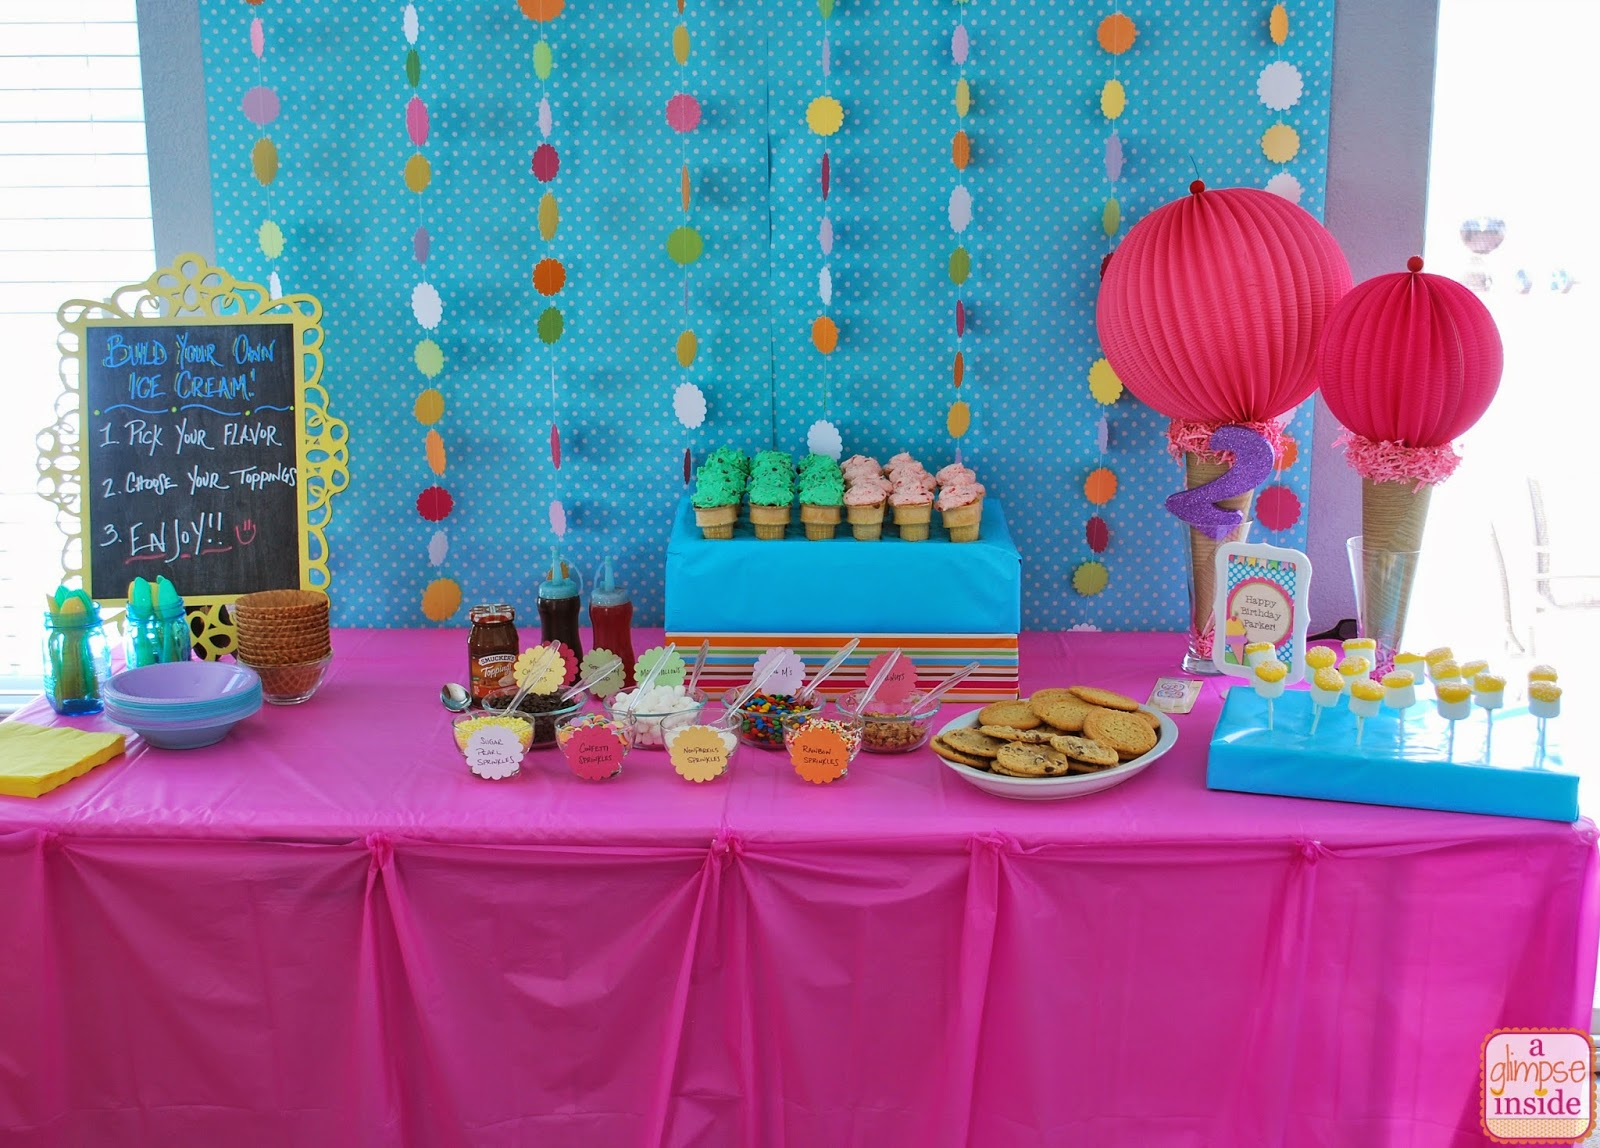 http://www.aglimpseinsideblog.com/2014/06/ice-cream-birthday-party-decorations.html